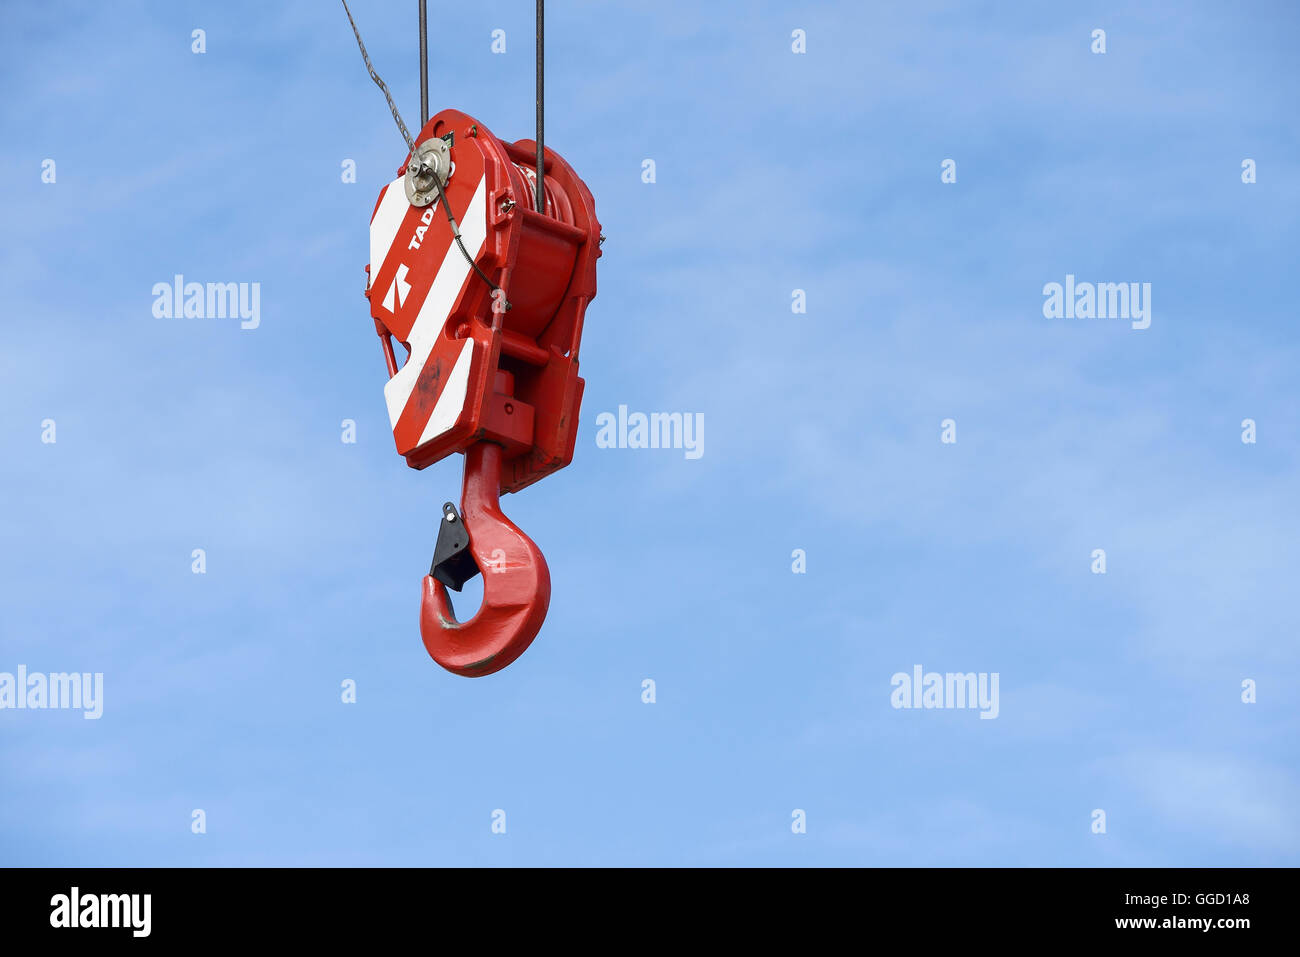 Close up of a hook on a heavy duty industrial crane - Stock Image